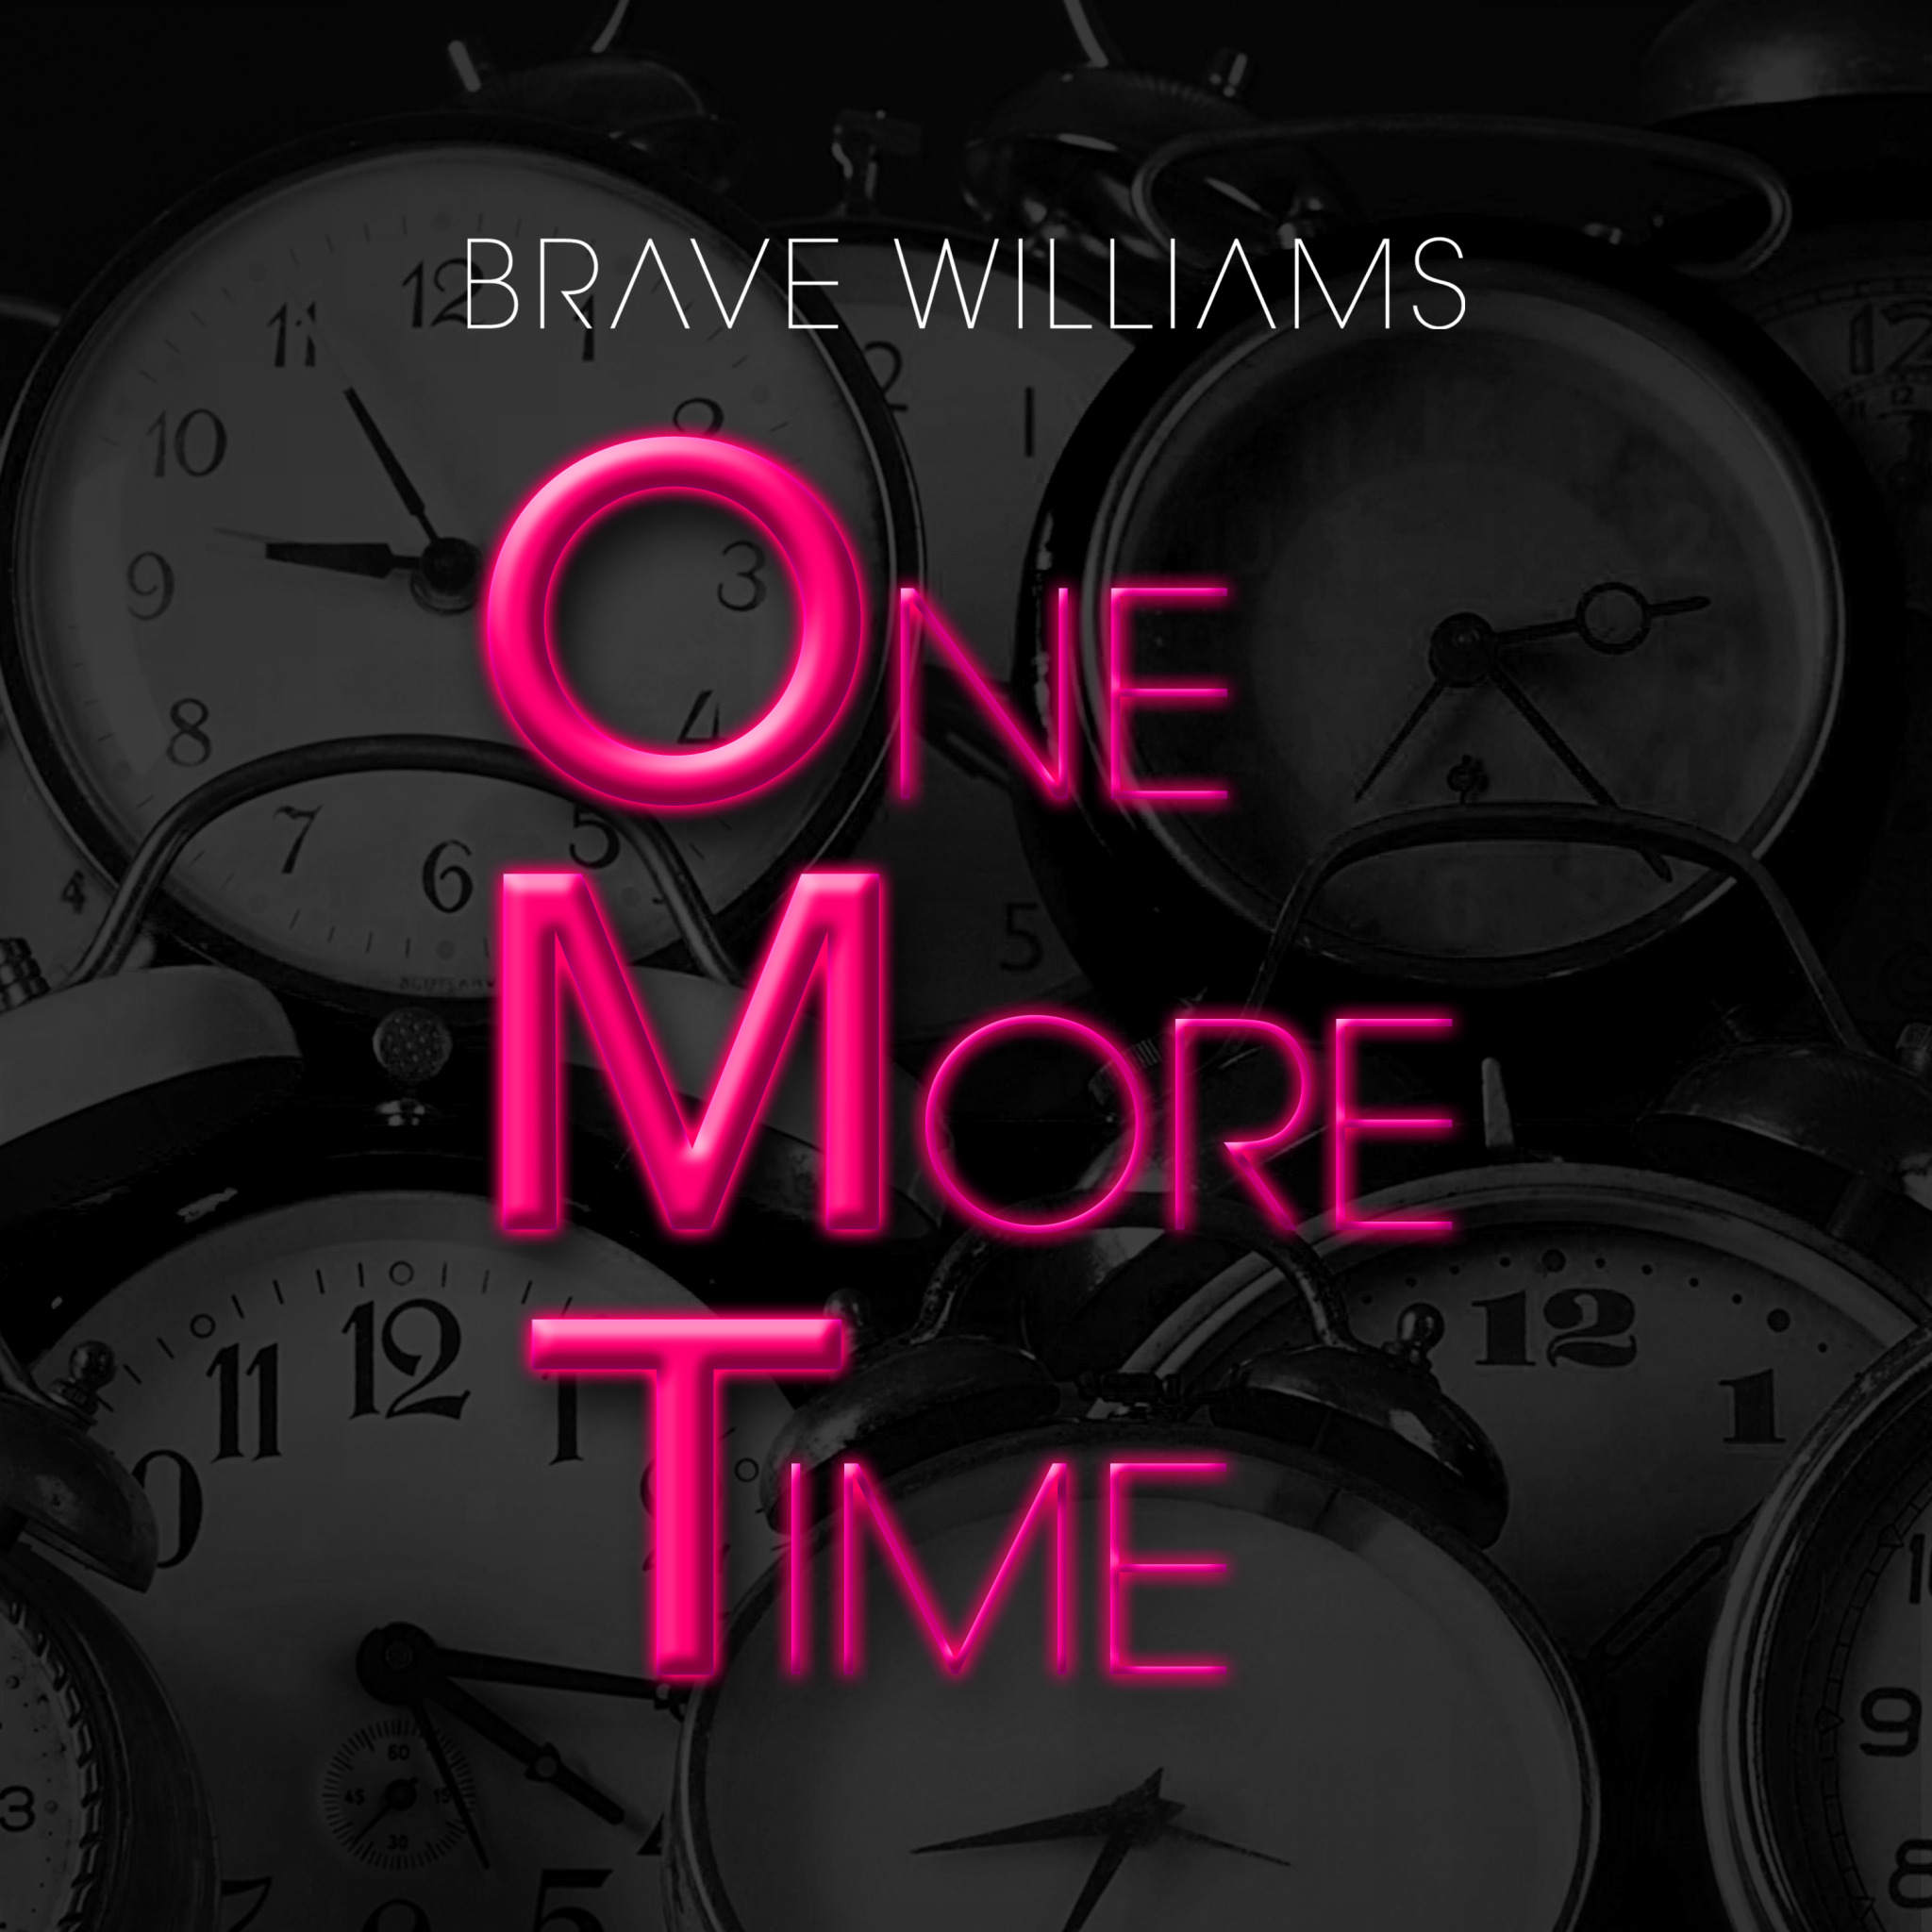 Brave Williams One More Time